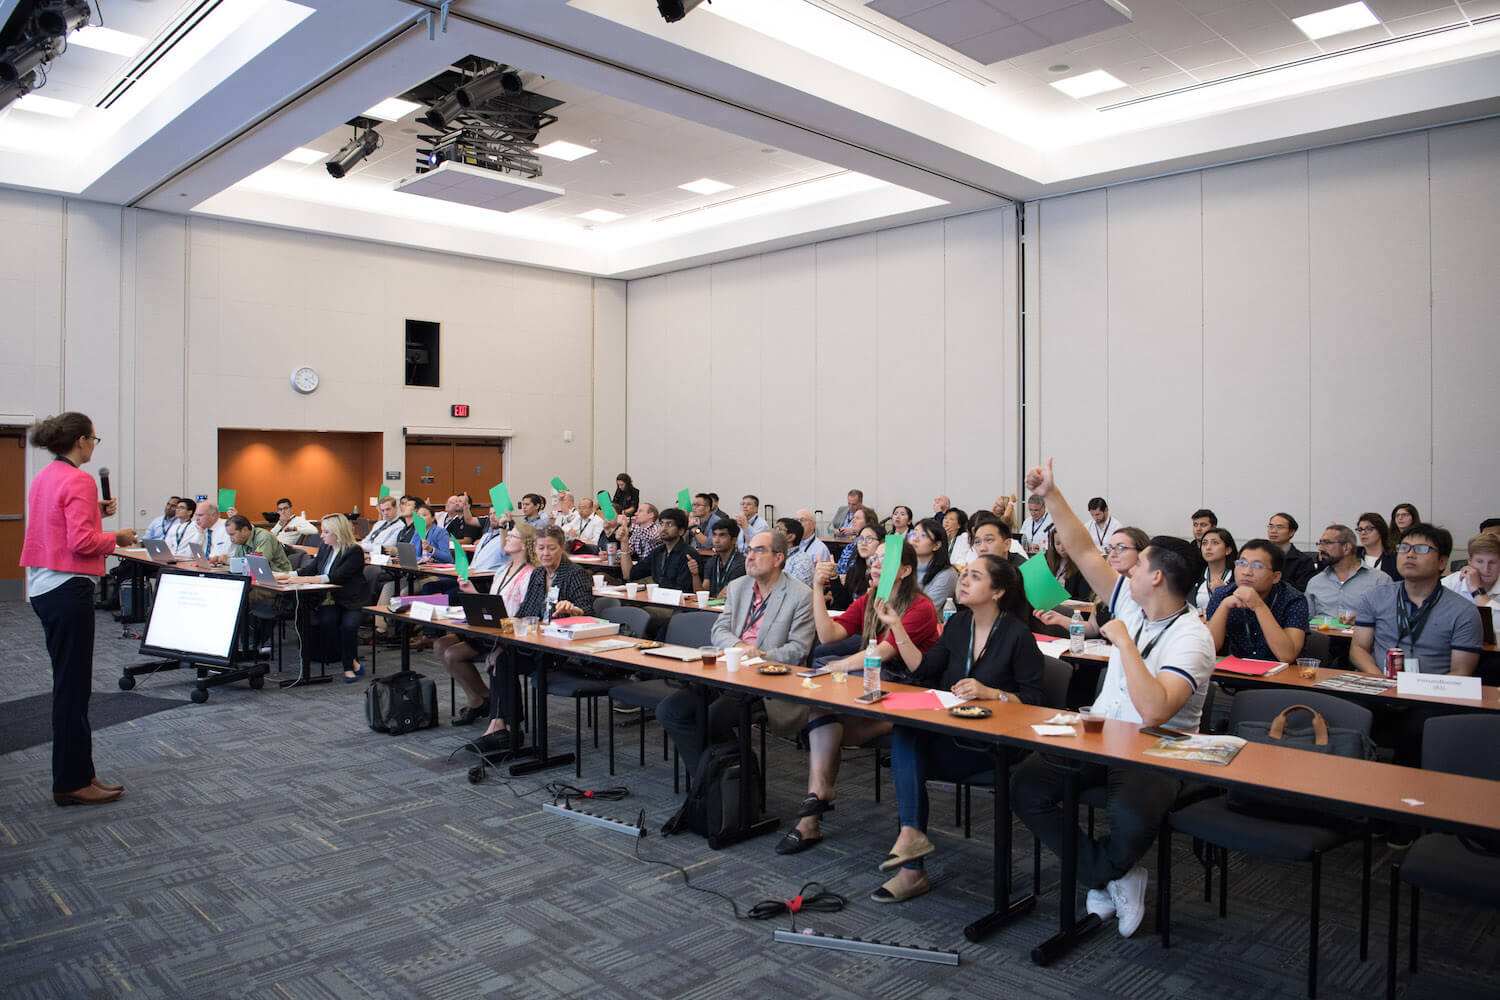 Teams participate in an interactive lecture during the October 2019 session of the MD Anderson I-Corps Regional Program. (Credit: The University of Texas MD Anderson Cancer Center)